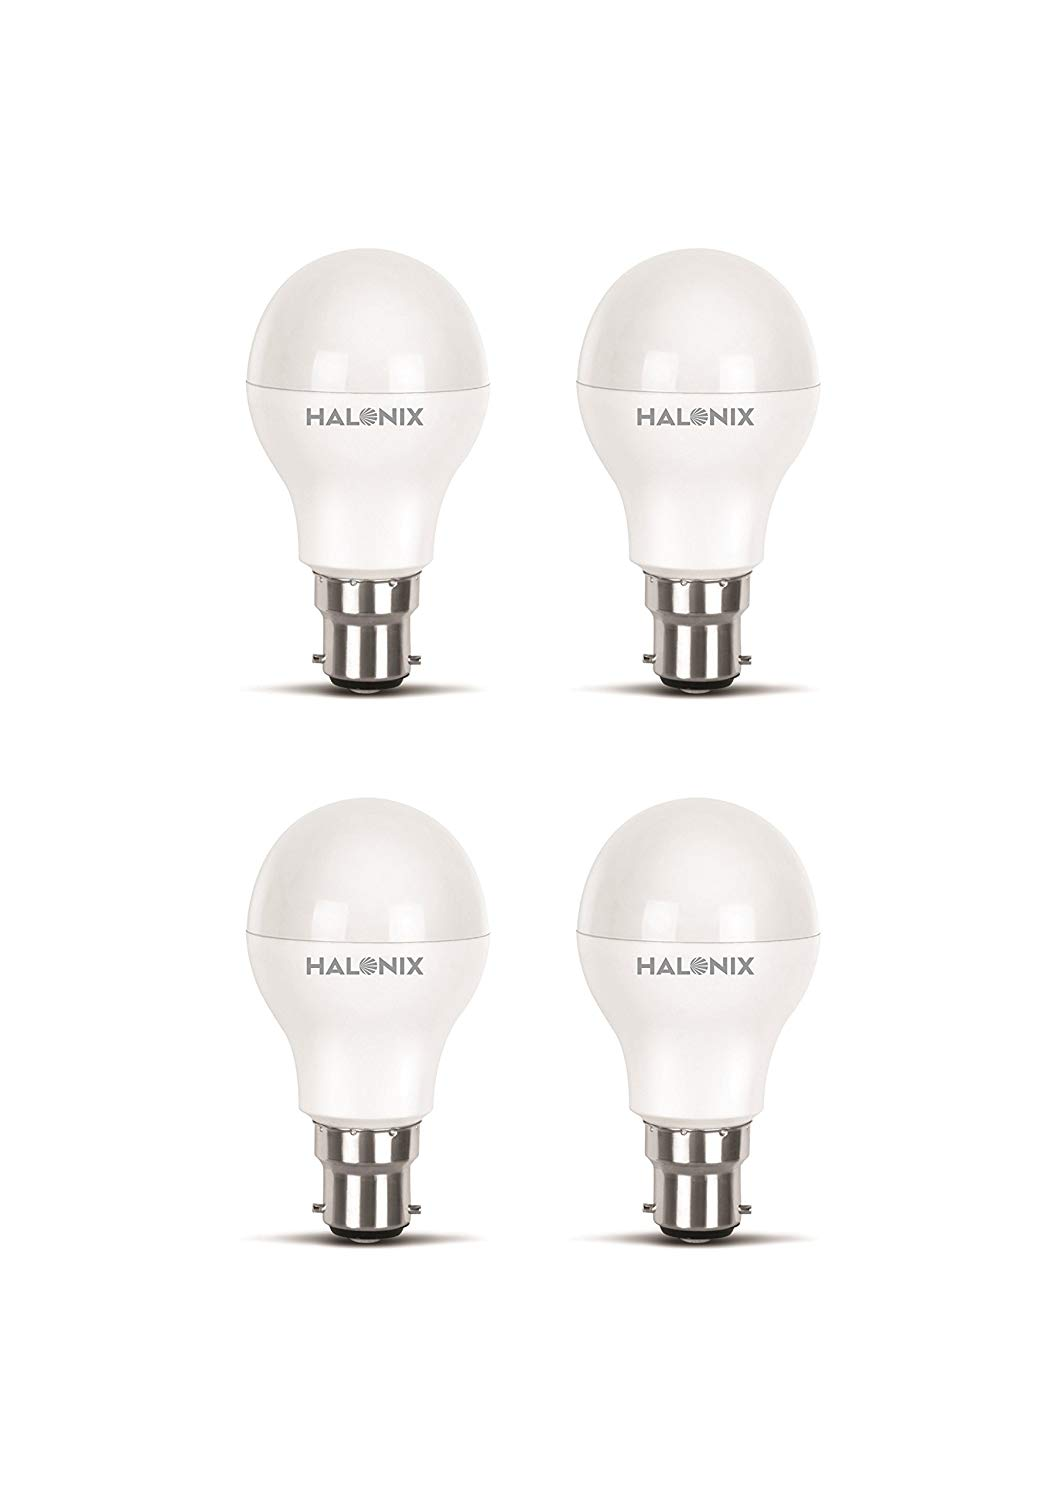 Halonix Photon Plus Base B22 15-Watt LED Bulb (Cool Day Light)